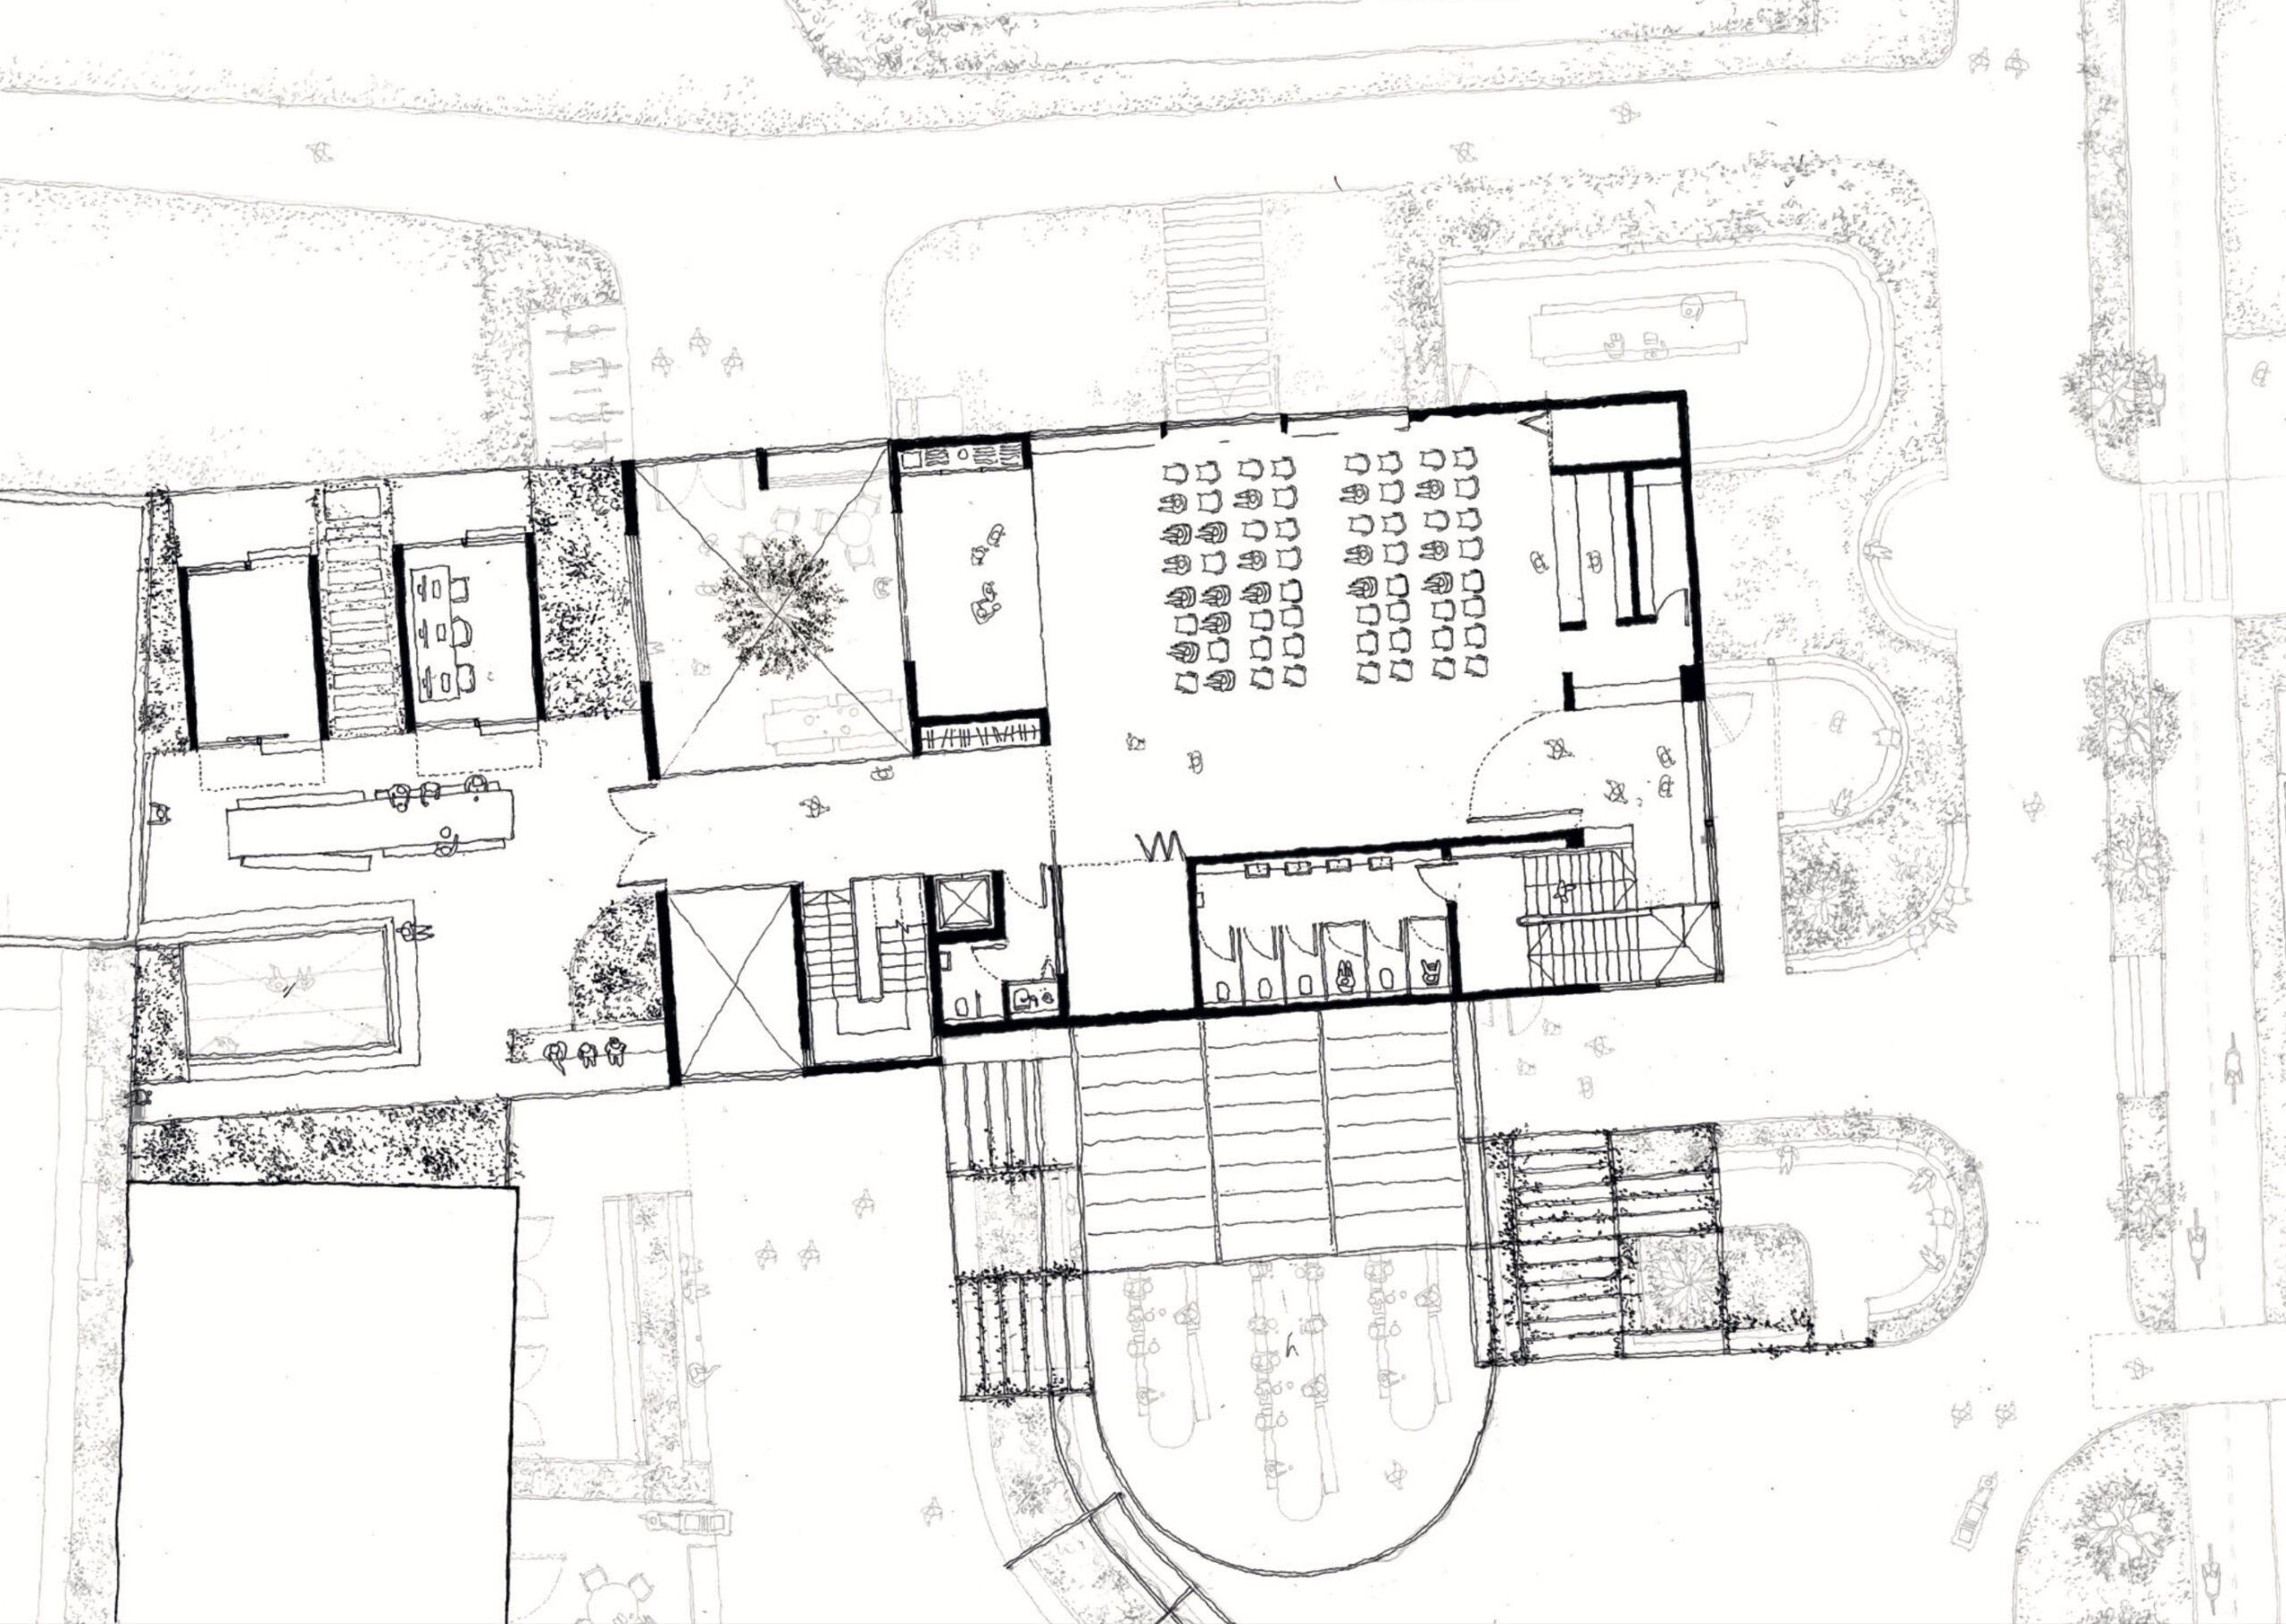 Proposed first floor plan showing community hall to  the right and bridge leading to rooftop garden with pop-up recording studios and pirate radio stations